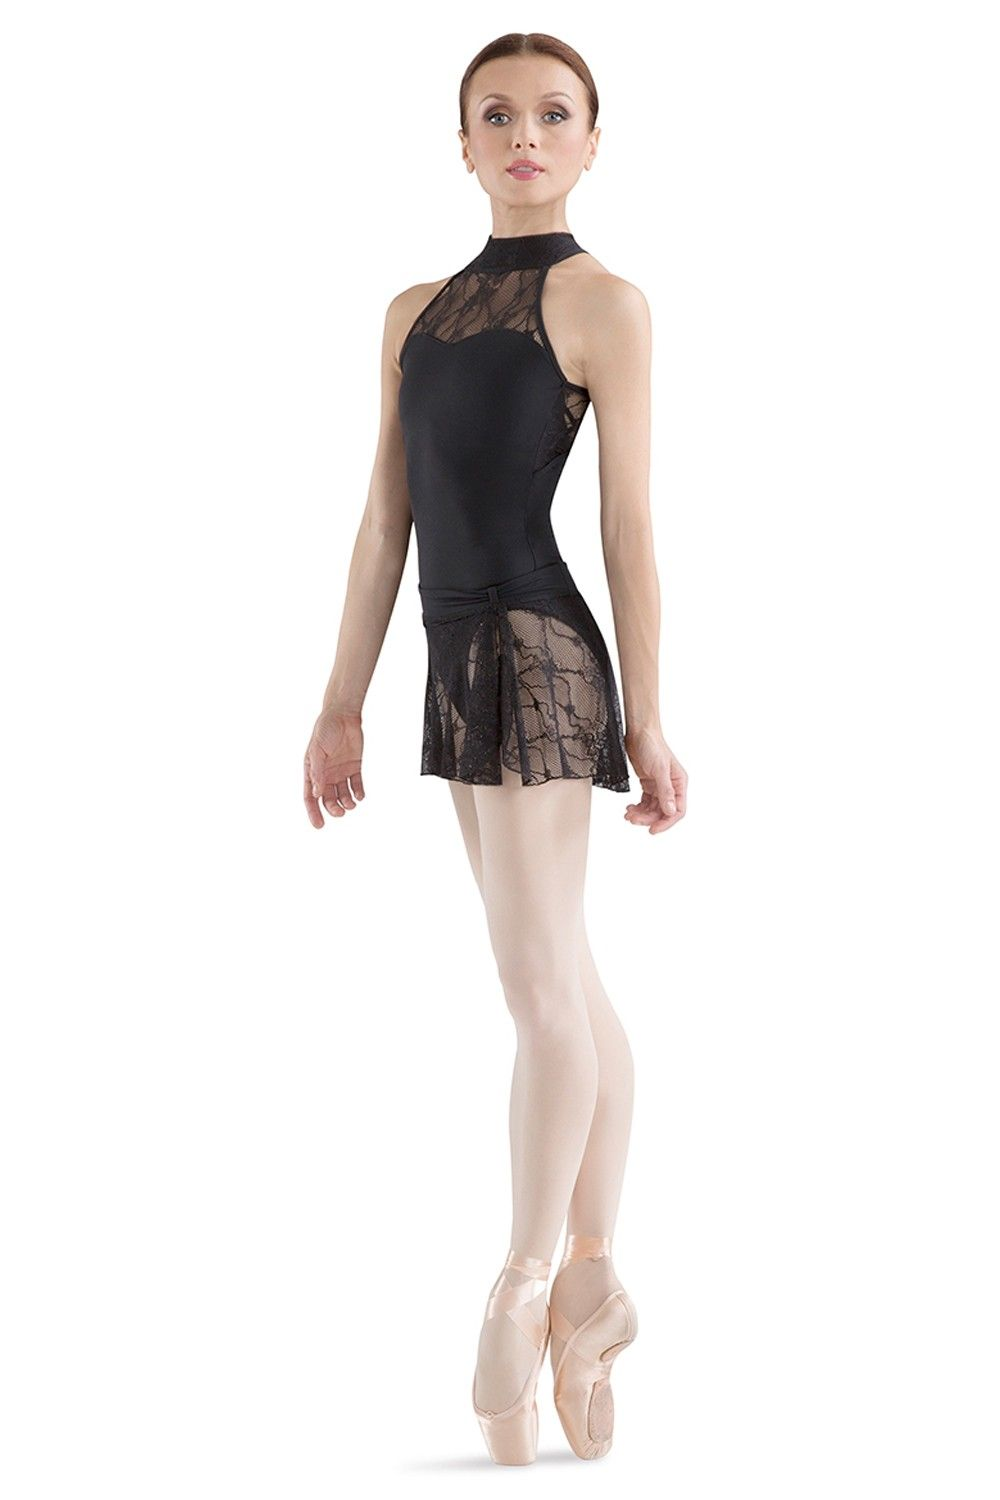 0ee5d3f514f4 L6040- Lace Bodice Halter Leotard - Women's Dancewear & Accessories - Bloch®  US Store